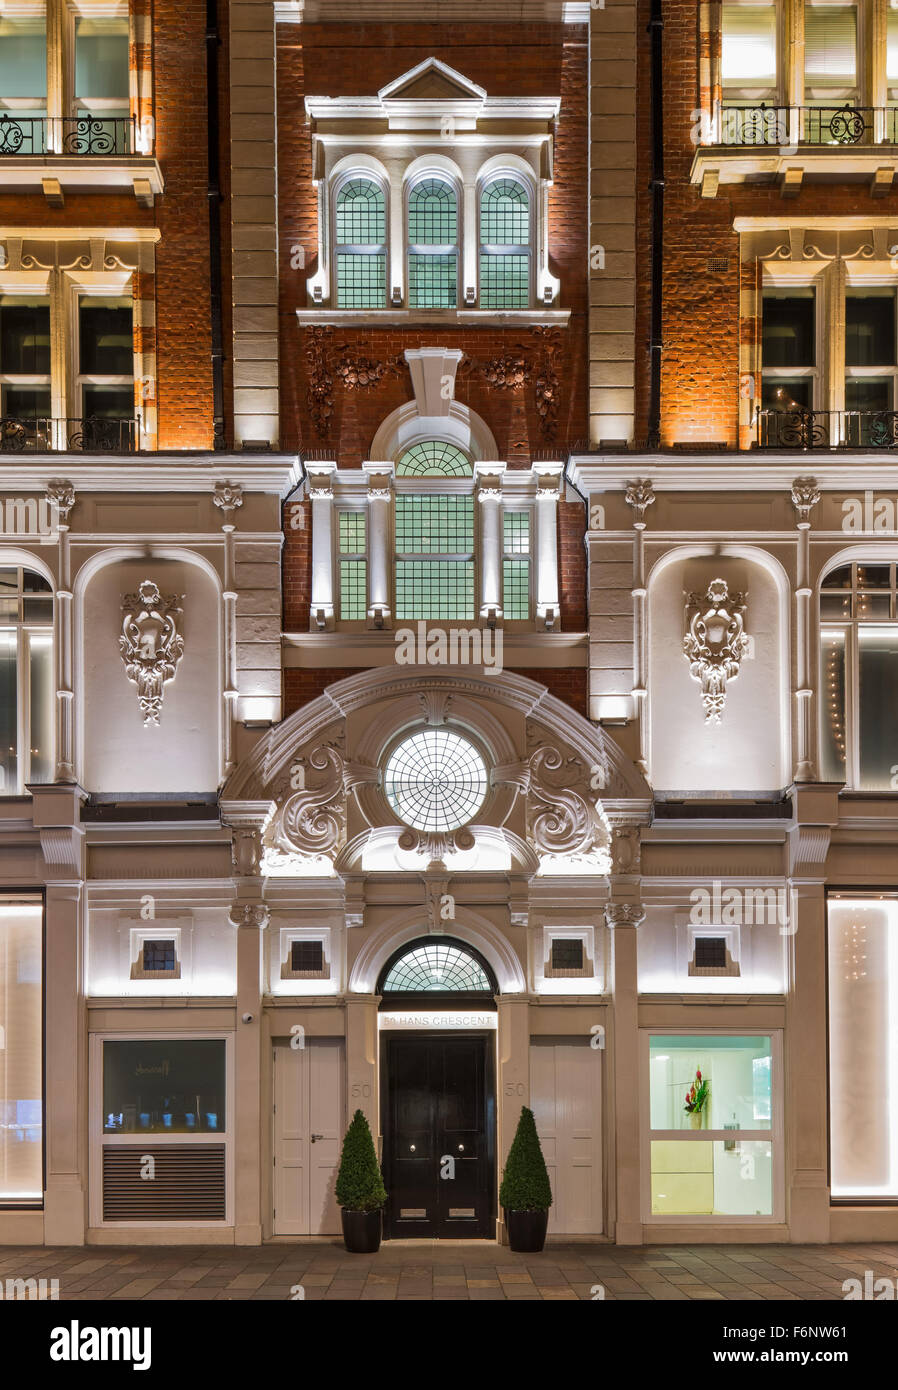 Floodlit retained facade at 50 Hans Crescent, Knightsbridge London. - Stock Image